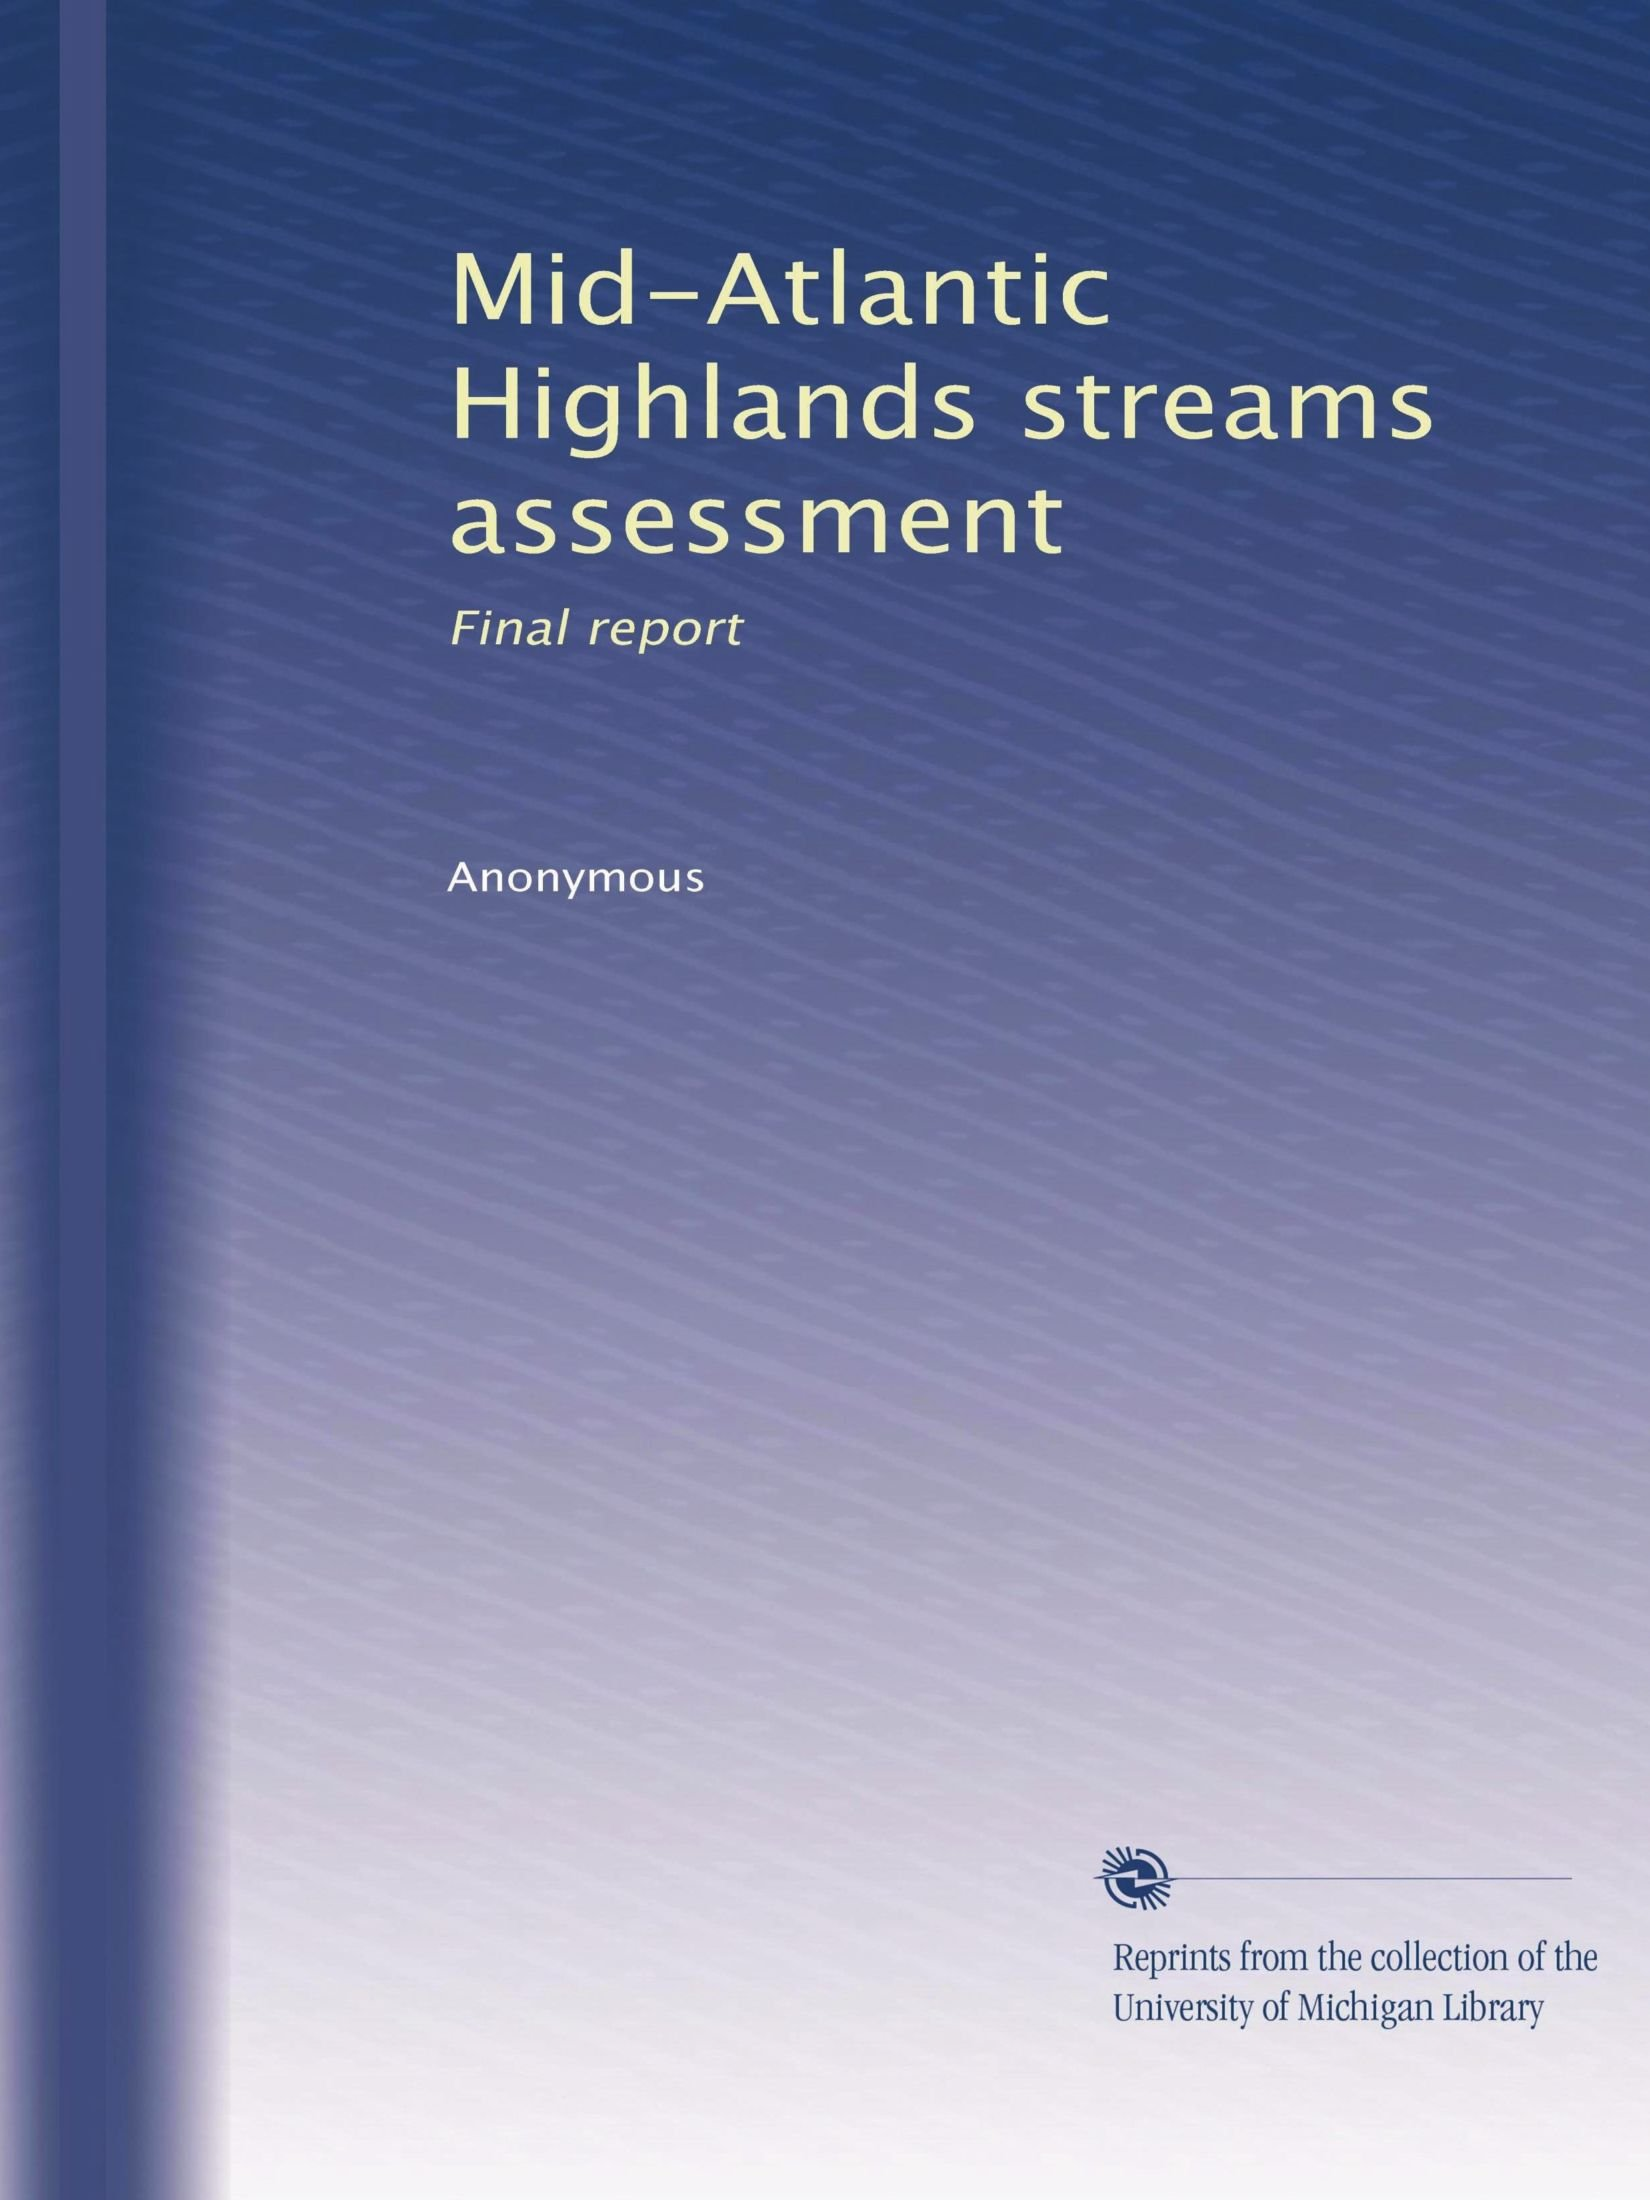 Download Mid-Atlantic Highlands streams assessment: Final report ebook